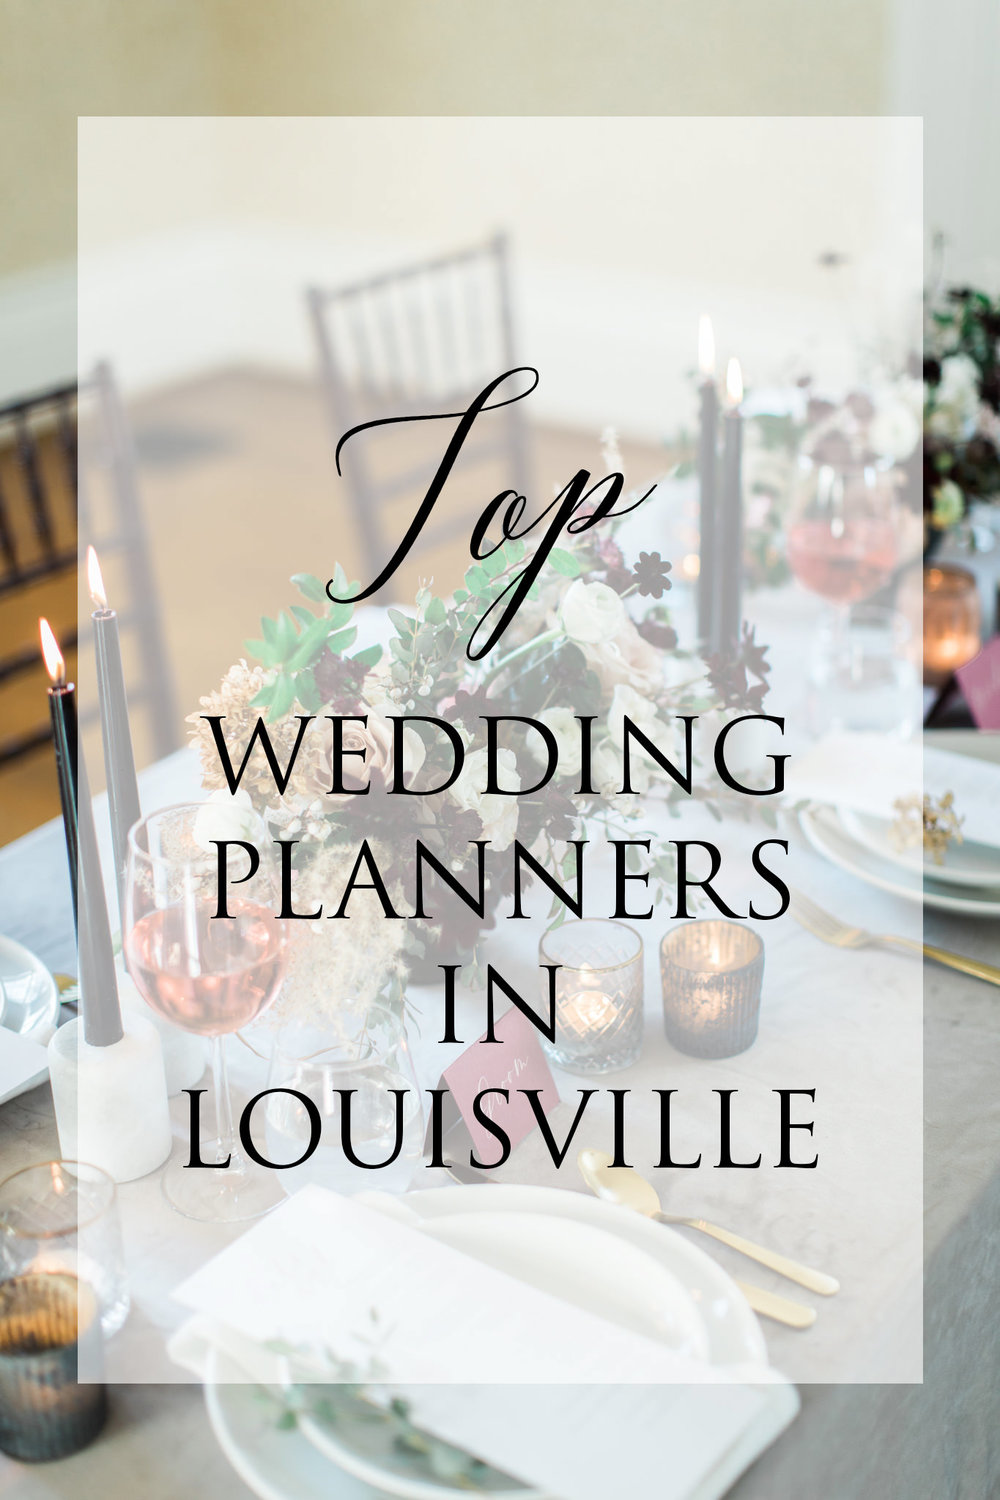 Wedding Planners Louisville - While we do have a preferred vendor list, we also want to bring a complete list of the more popular Louisville wedding planners that are known to have a good working reputation...read more